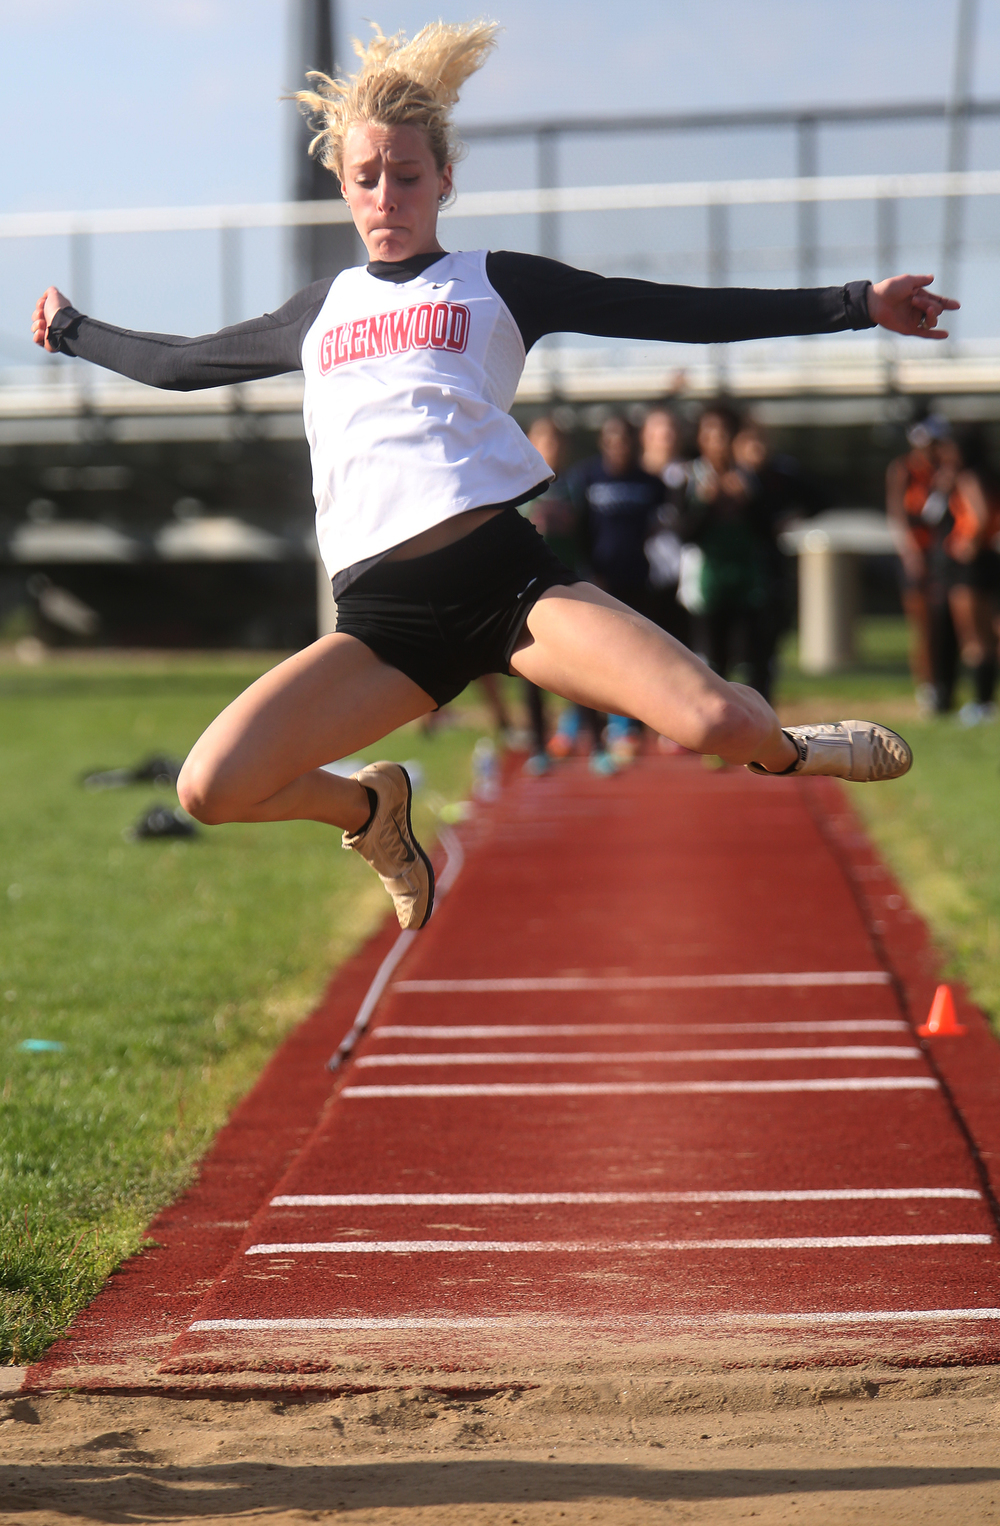 Glenwood High School's Alison Woerner goes airborne in capturing first place overall in the triple jump event with a leap of 36-5.25 feet. David Spencer/The State Journal-Register